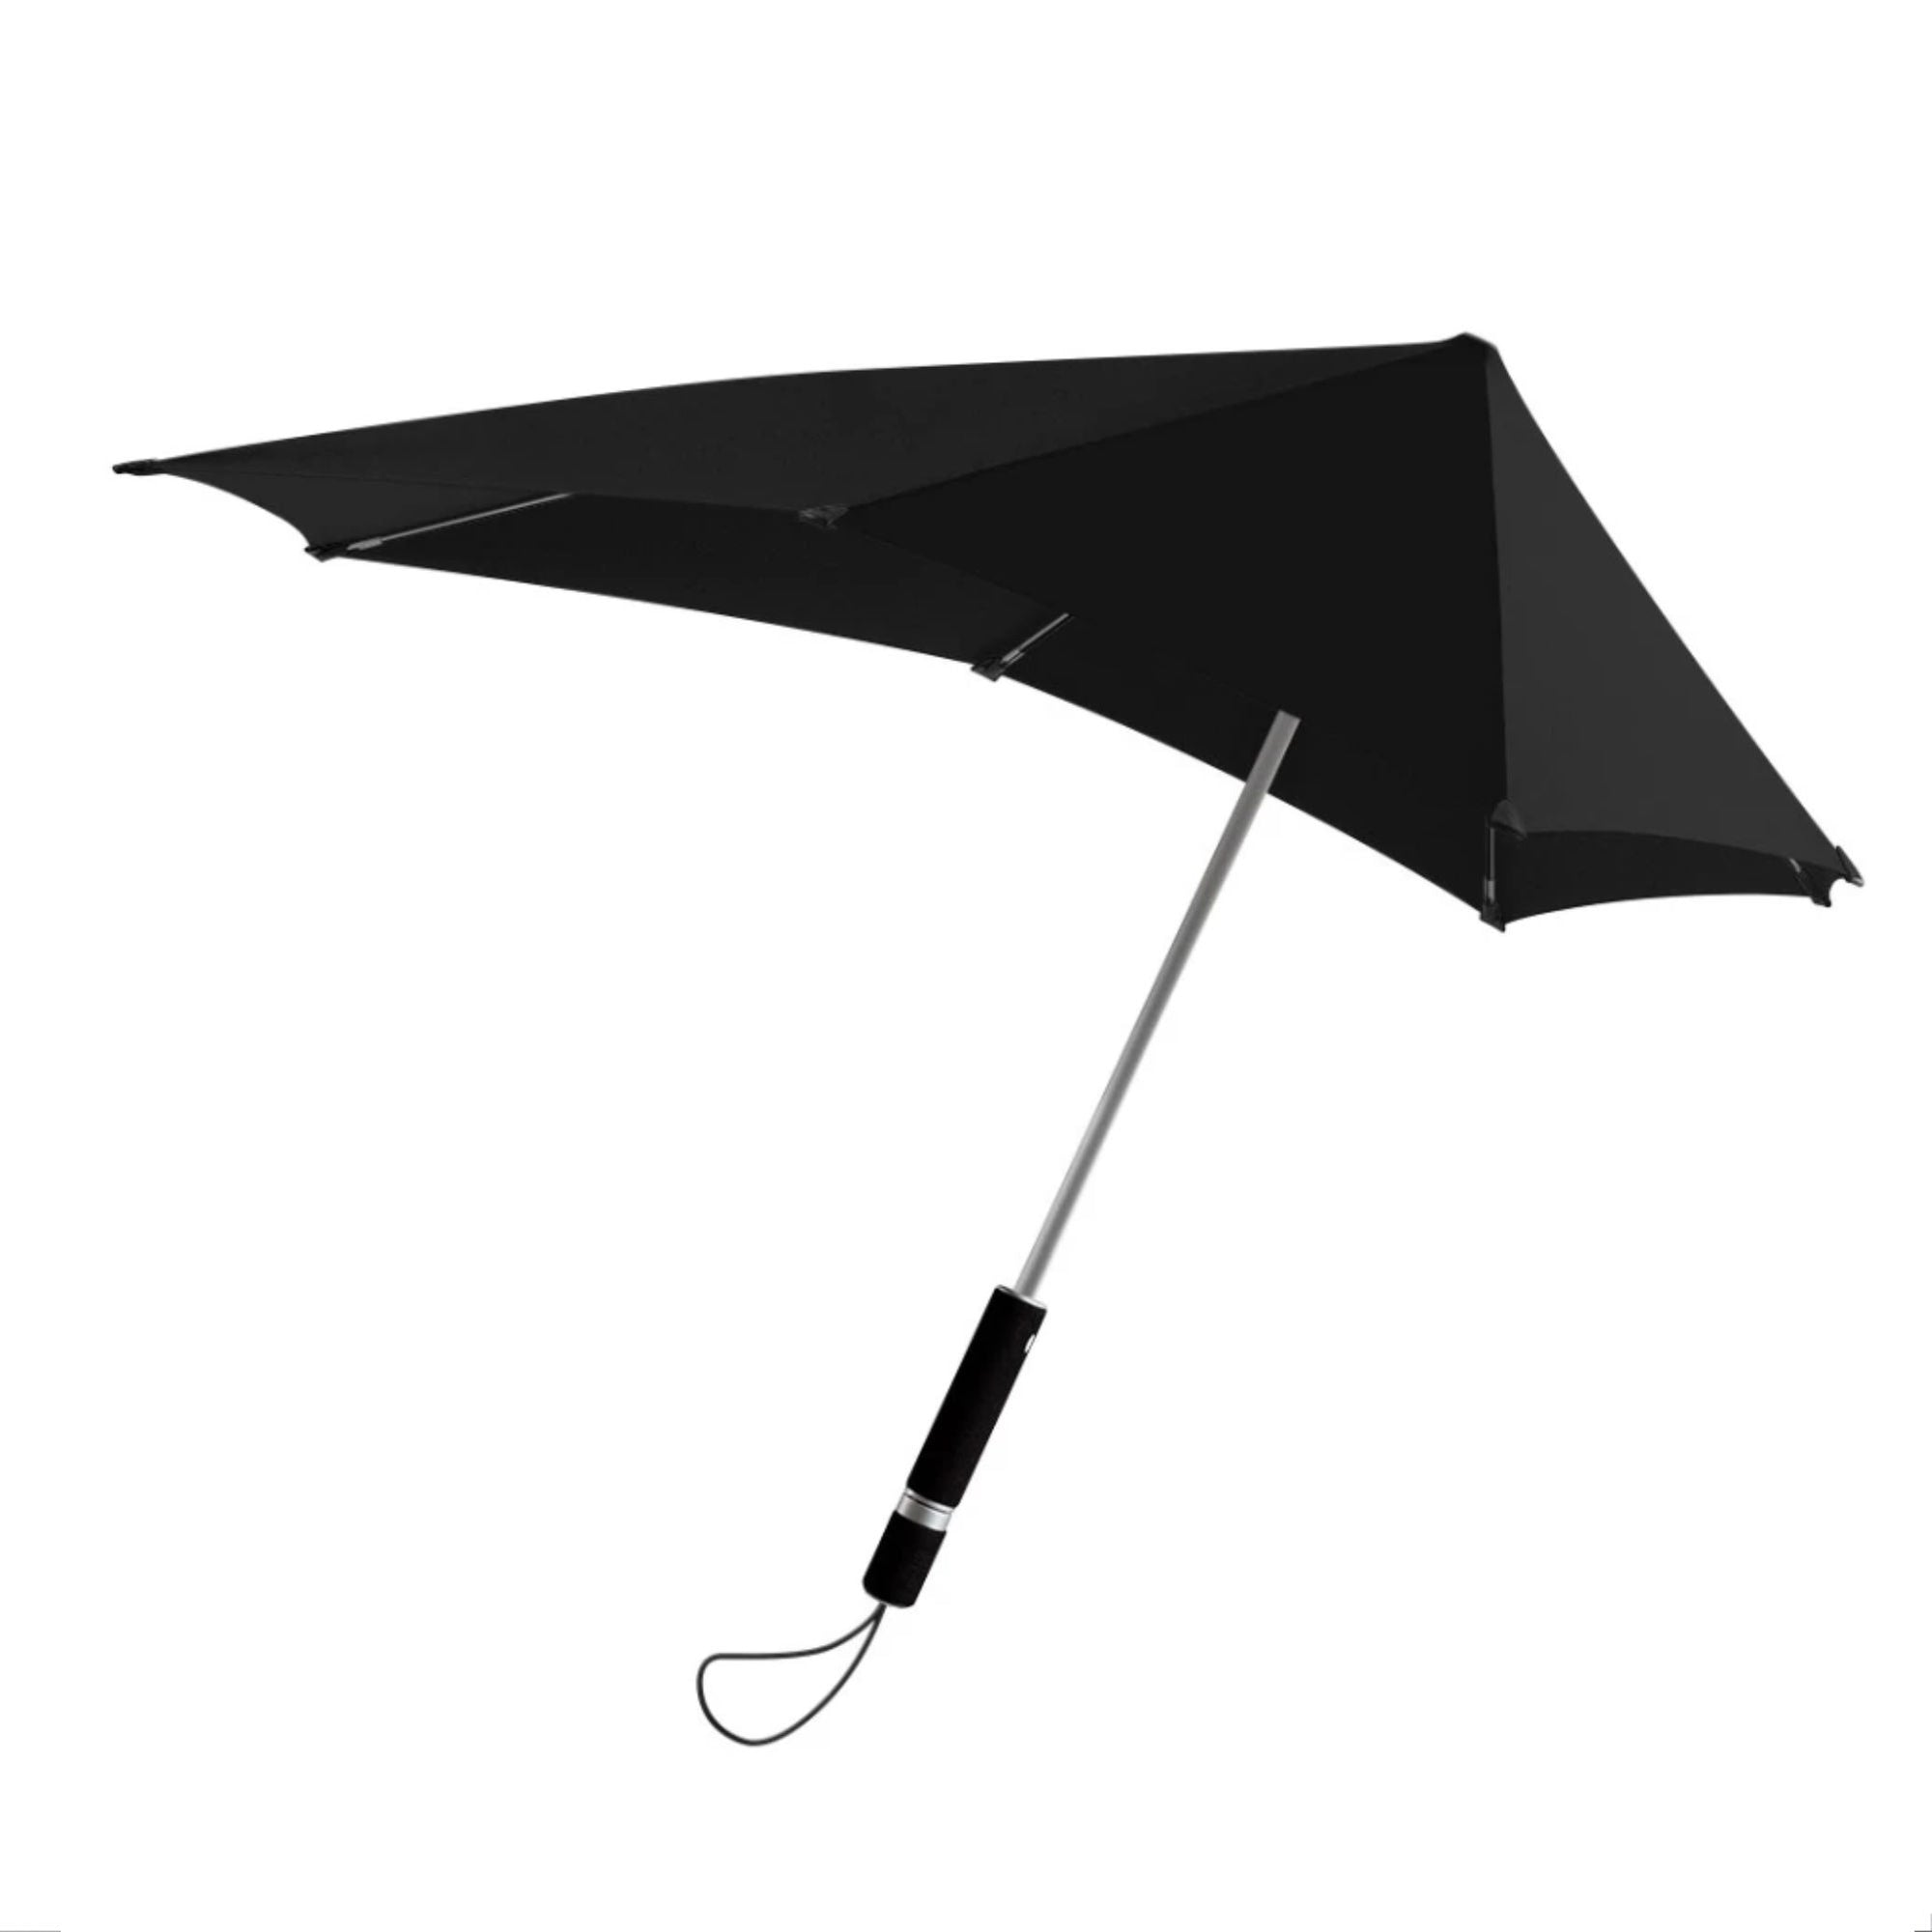 Senz° Original storm umbrella, pure black